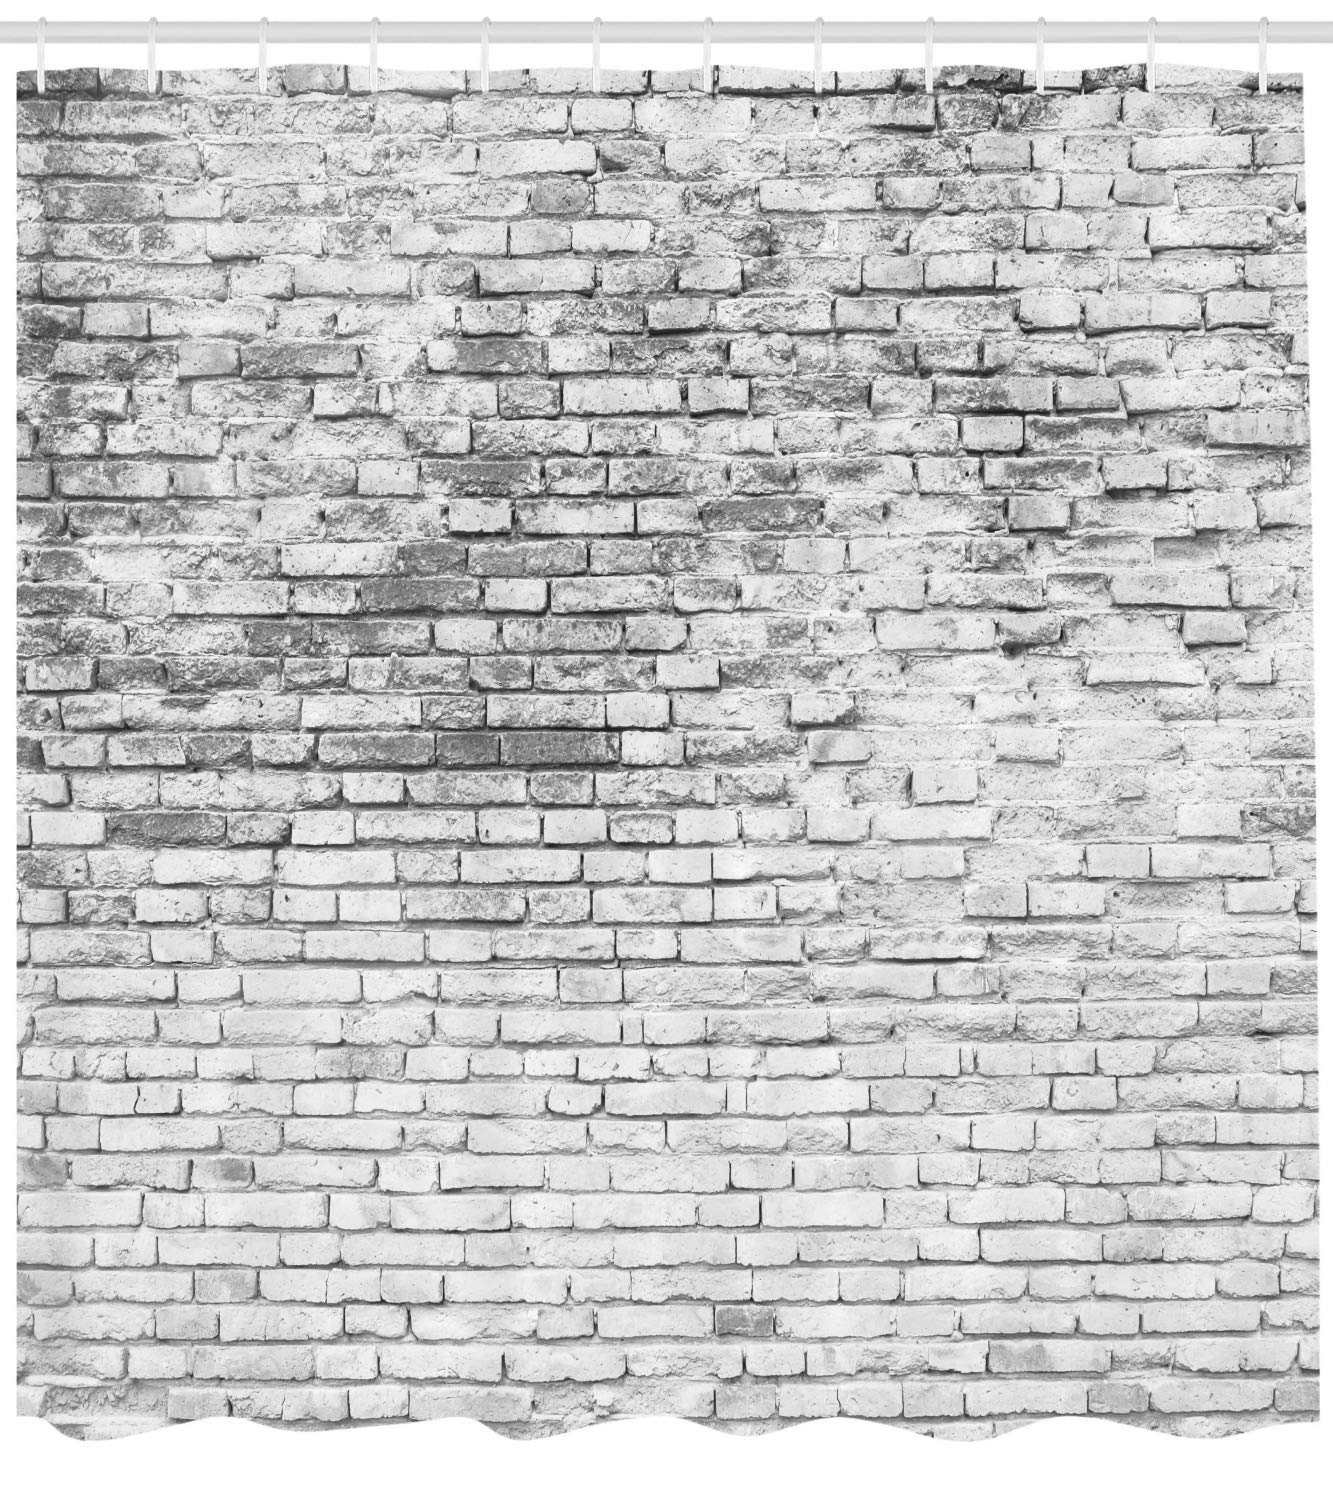 Lunarable Brick Wall Shower Curtain, Worn and Cracked Grunge Stained Brick Wall Masonry Architecture Image Print, Cloth Fabric Bathroom Decor Set with Hooks, 105'' Extra Wide, White Grey